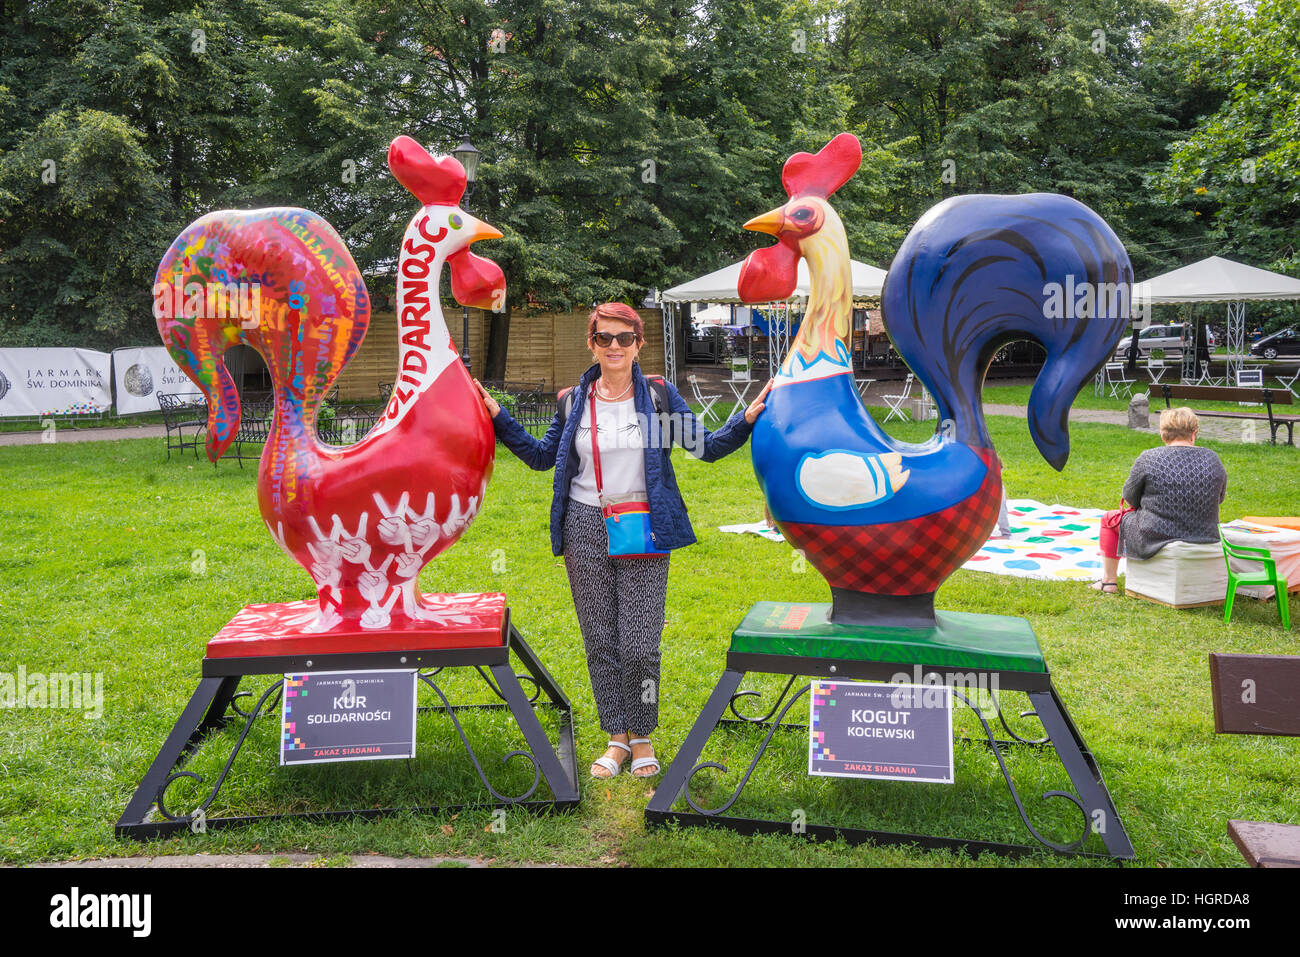 Poland, Pomerania, Gdansk (Danzig), rooster sculpture exhibit during the annual St. Dominic's Fair at Kobzdej - Stock Image